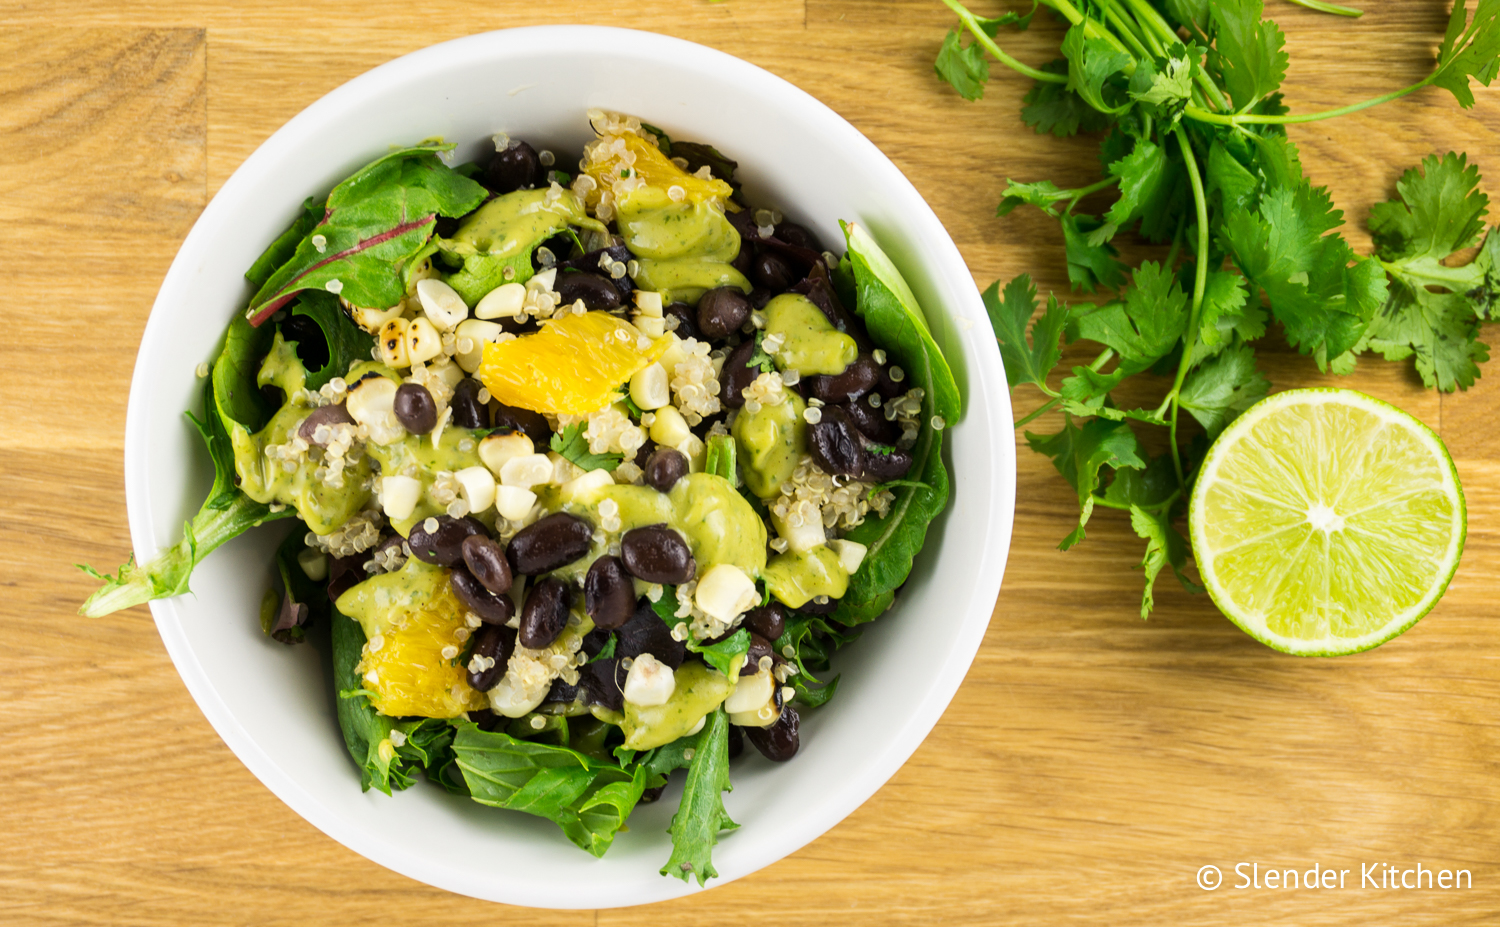 Avocado And Corn Salad With Creamy Avocado Dressing Recipes ...